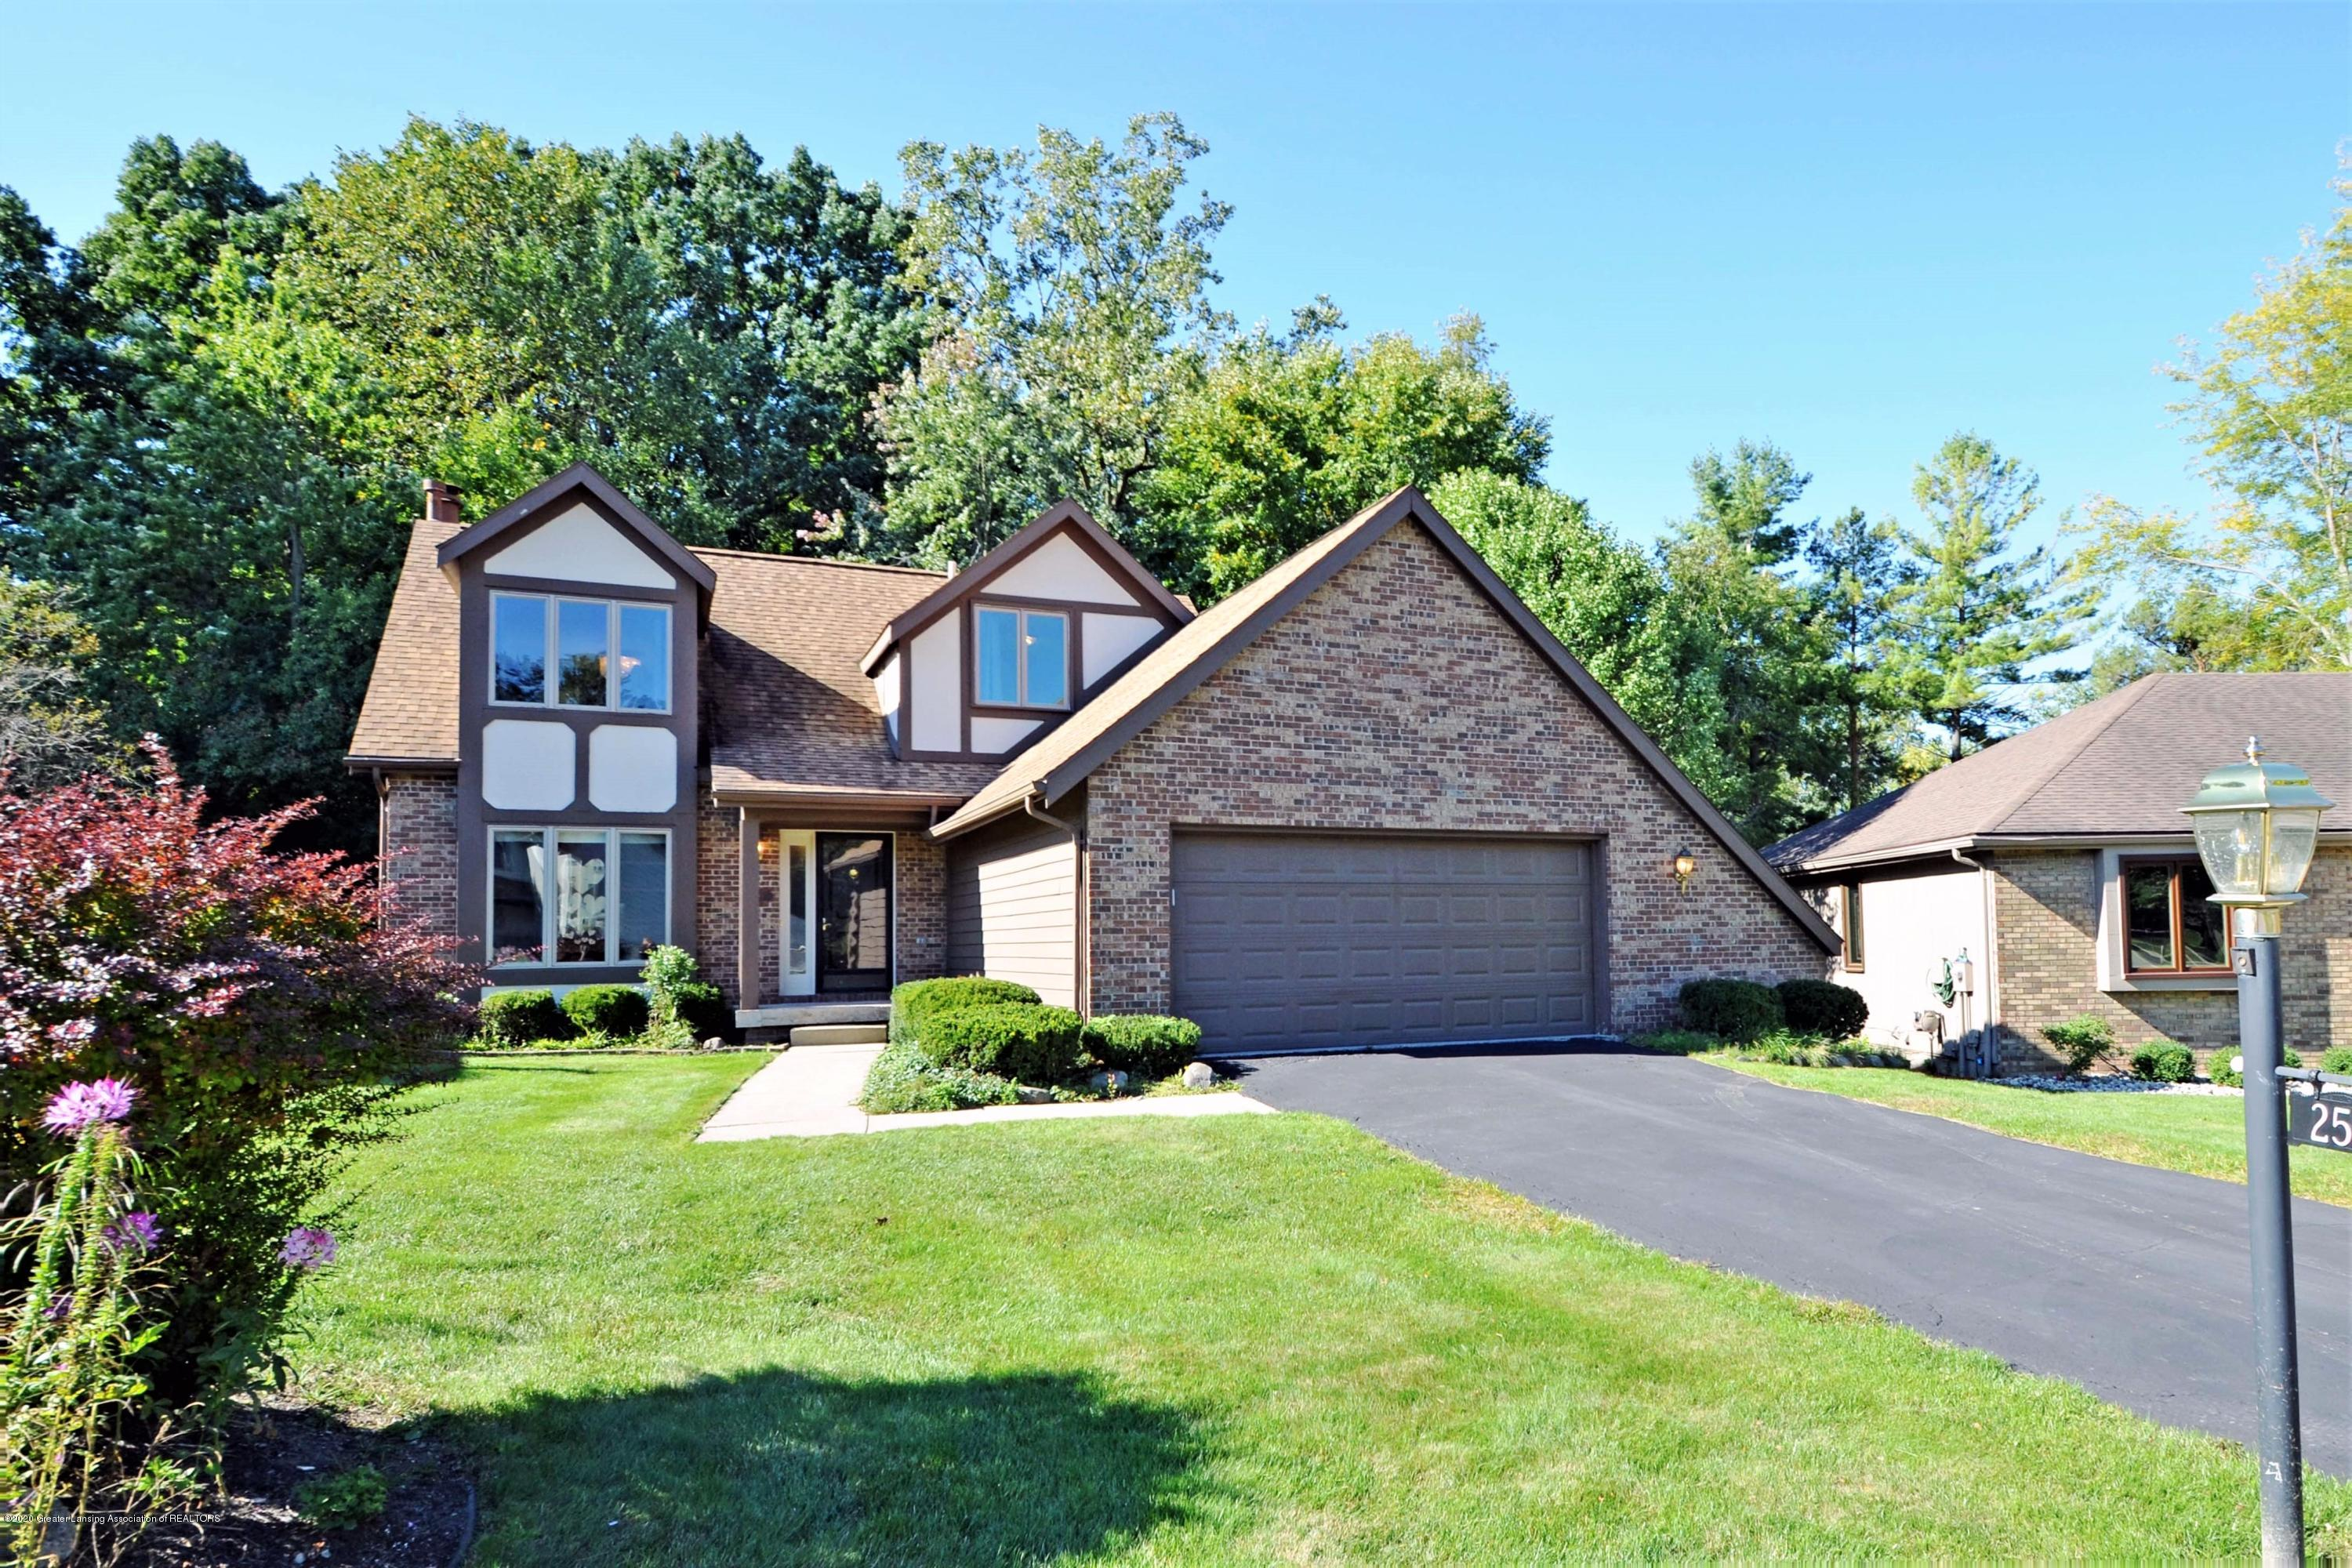 2599 Woodhill Dr 35 - Front - 1